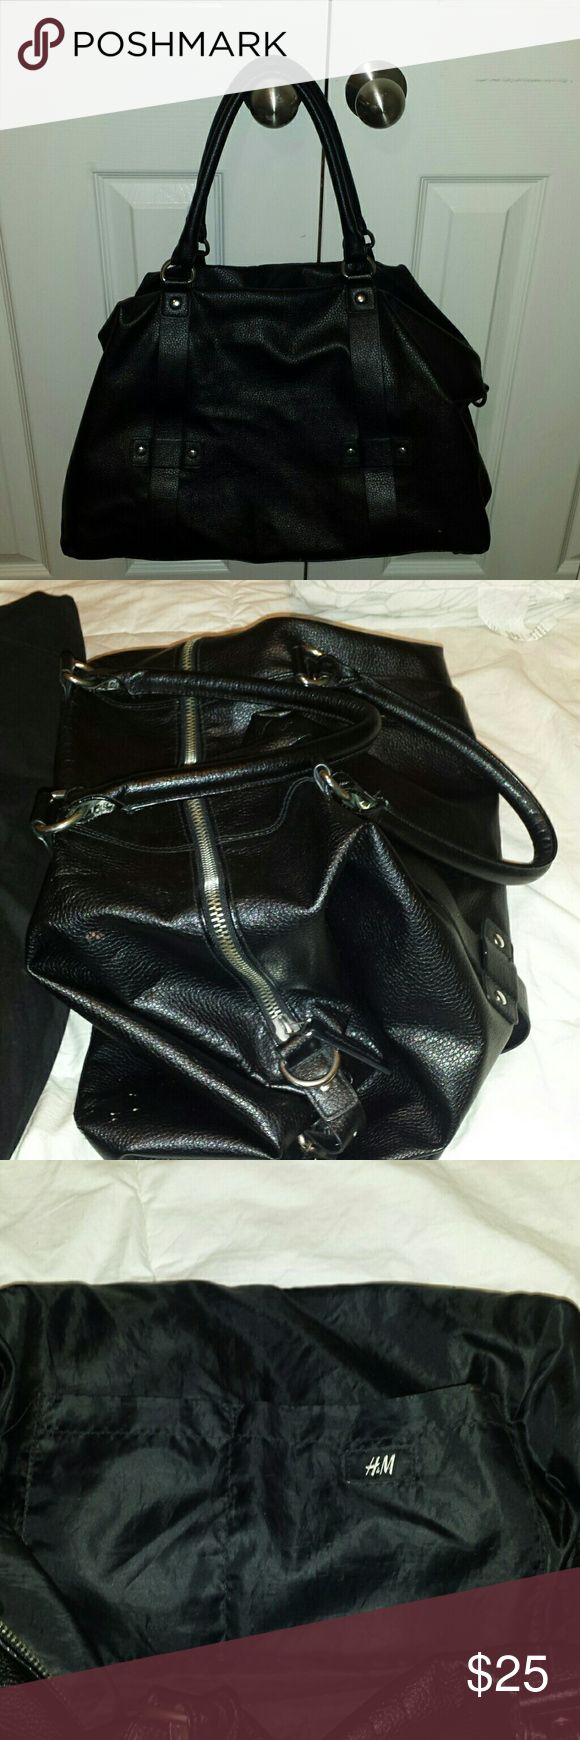 H&M black men's overnight bag or BIG BLACK PURSE H&M black men's overnight bag  Used as a BIG BLACK EVERY DAY PURSE  Used Don't have the side strap that came with it anymore Didn't originally come with hard bottom but may be able to add 6/10 condition   1 of the 4 bottom prongs missing  (pictured in 4th photo)  Make me an offer H&M Bags